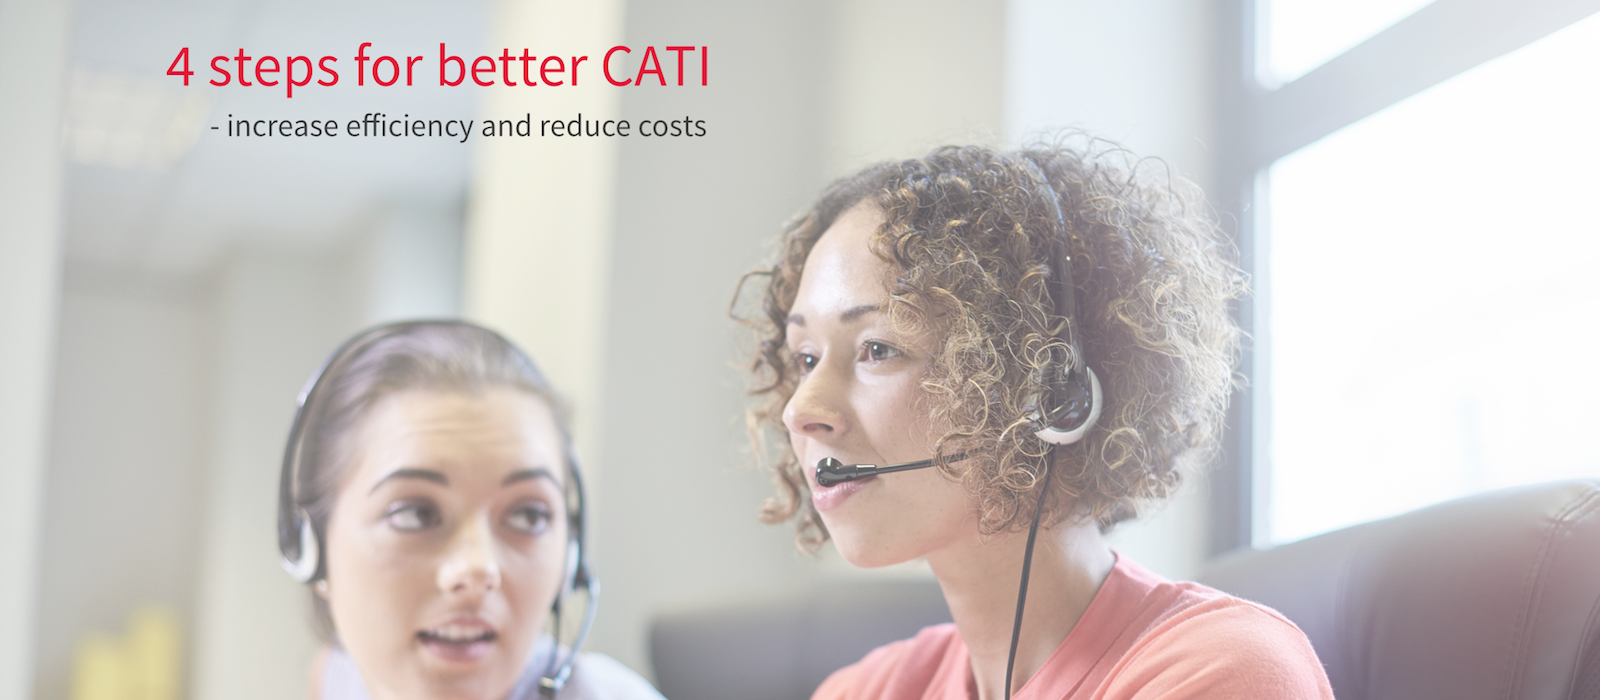 4 steps to better CATI